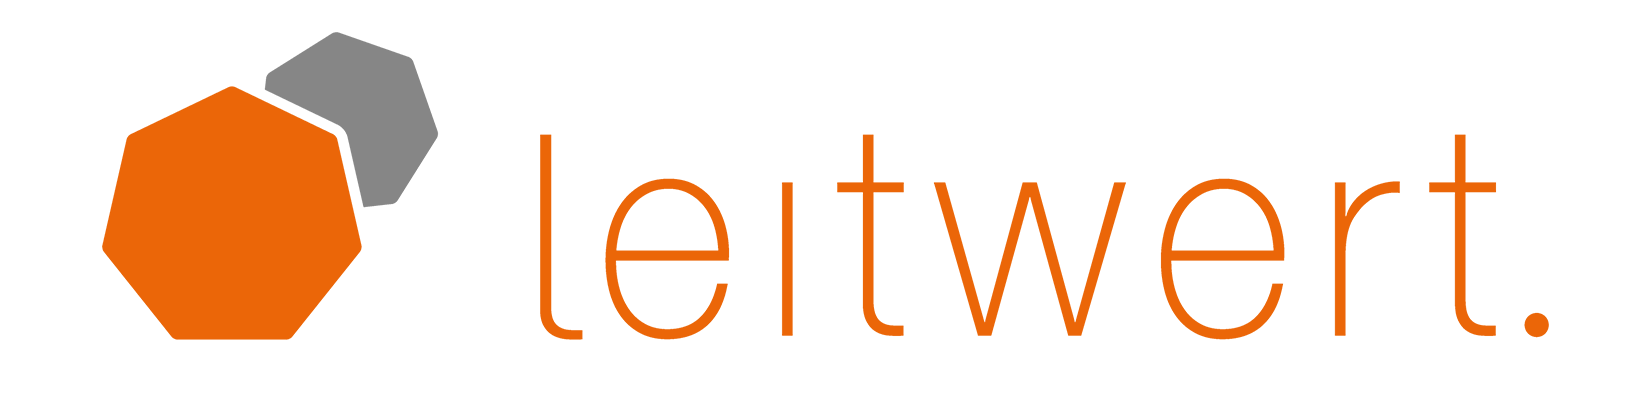 Leitwert logo in the corporate colors orange and grey